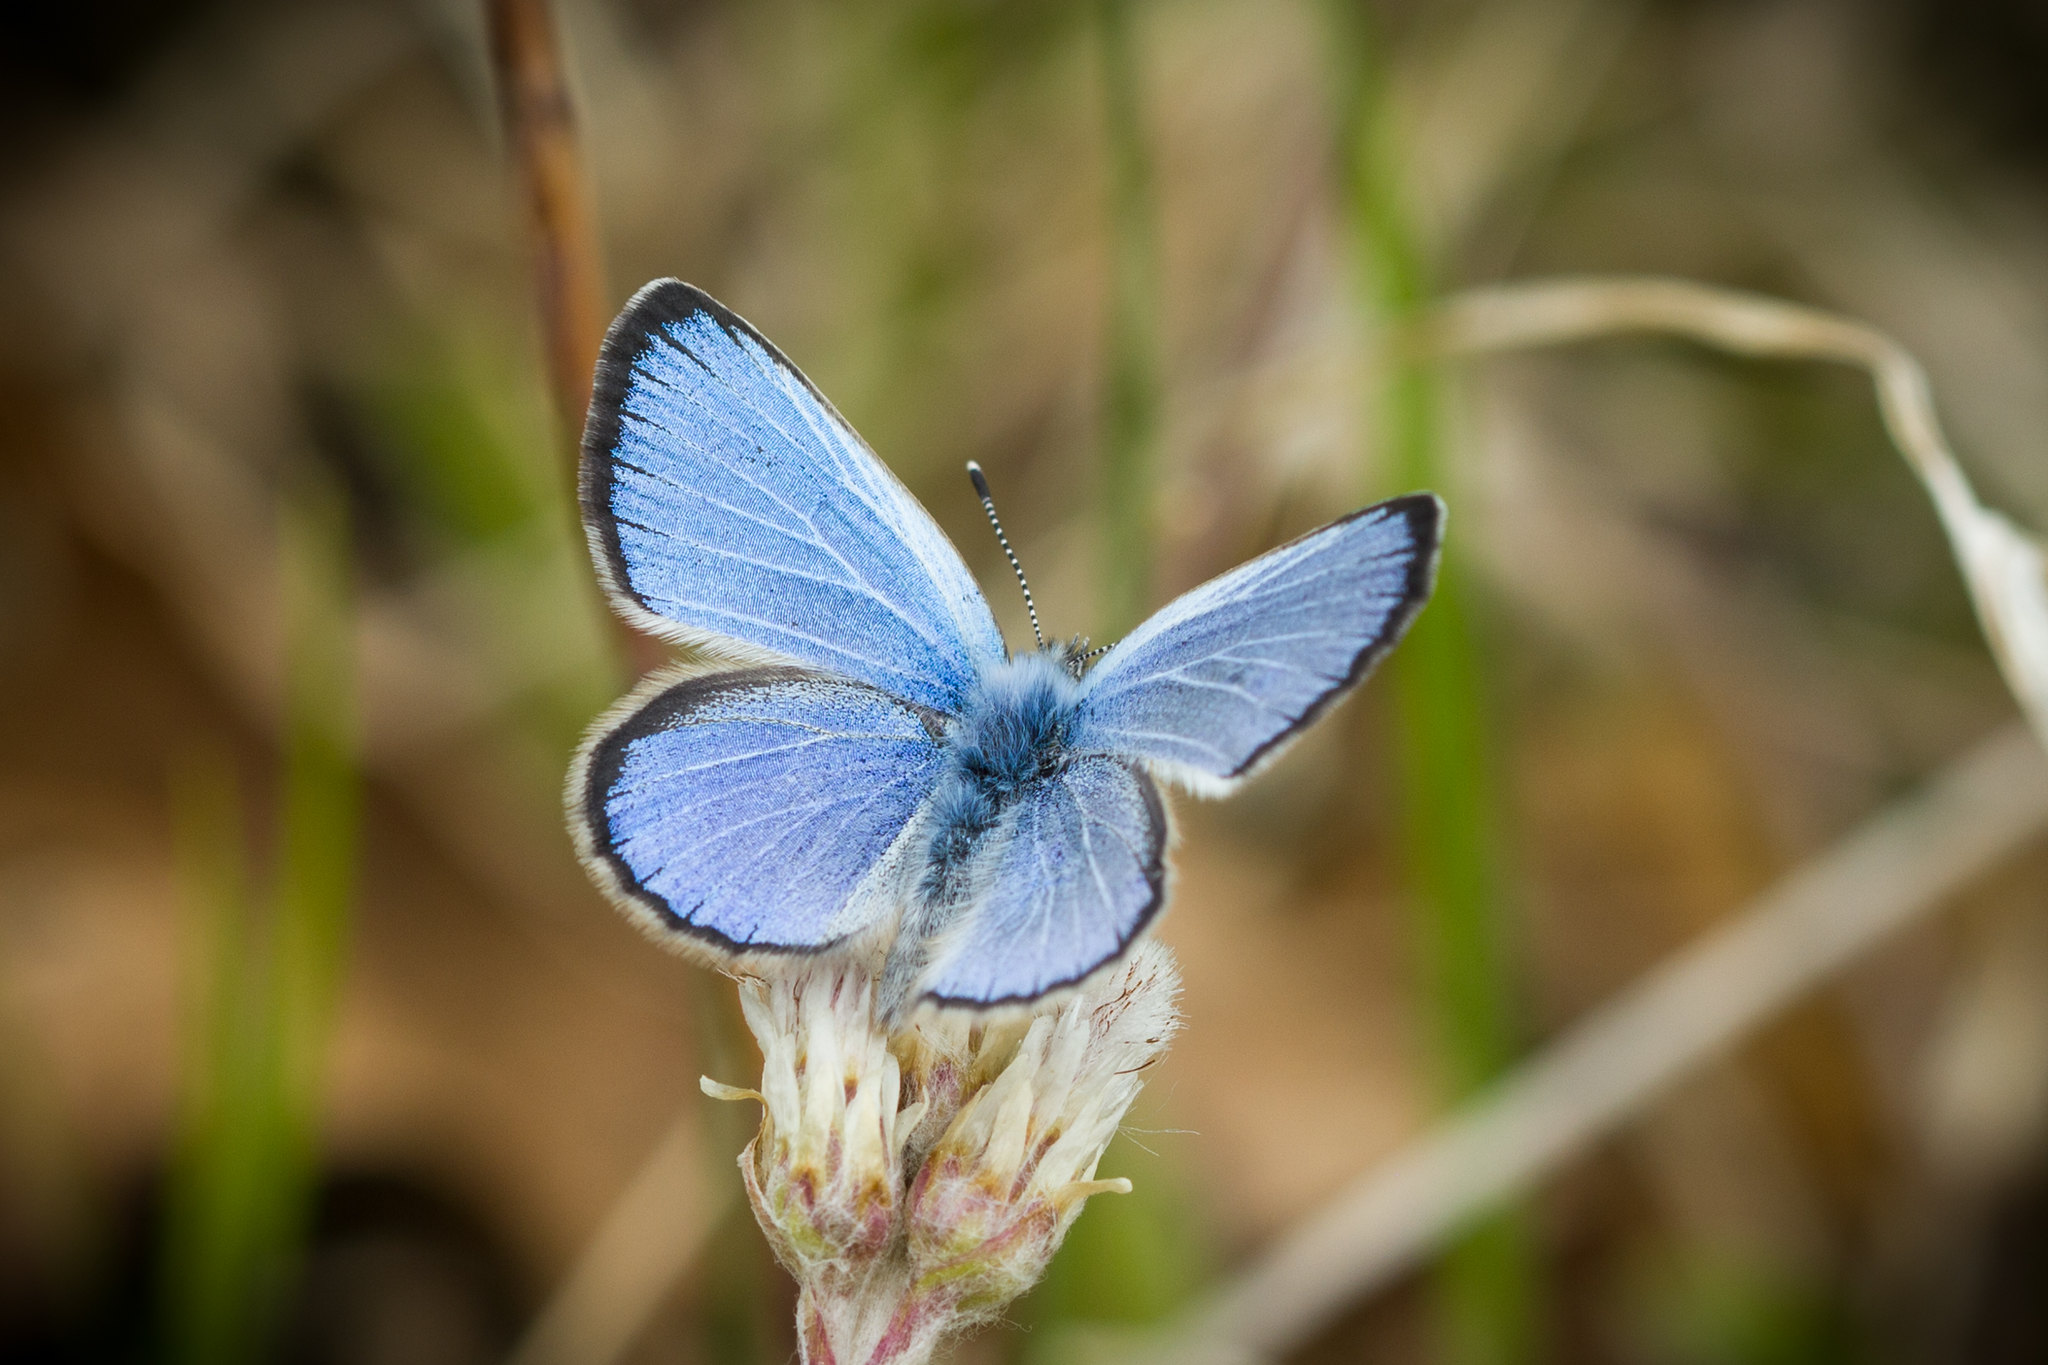 Karner blue butterfly (Lycaeides melissa samuelis) topside showing the dark blue topside of its wings. Photo courtesy flickr user Justin Meissen.